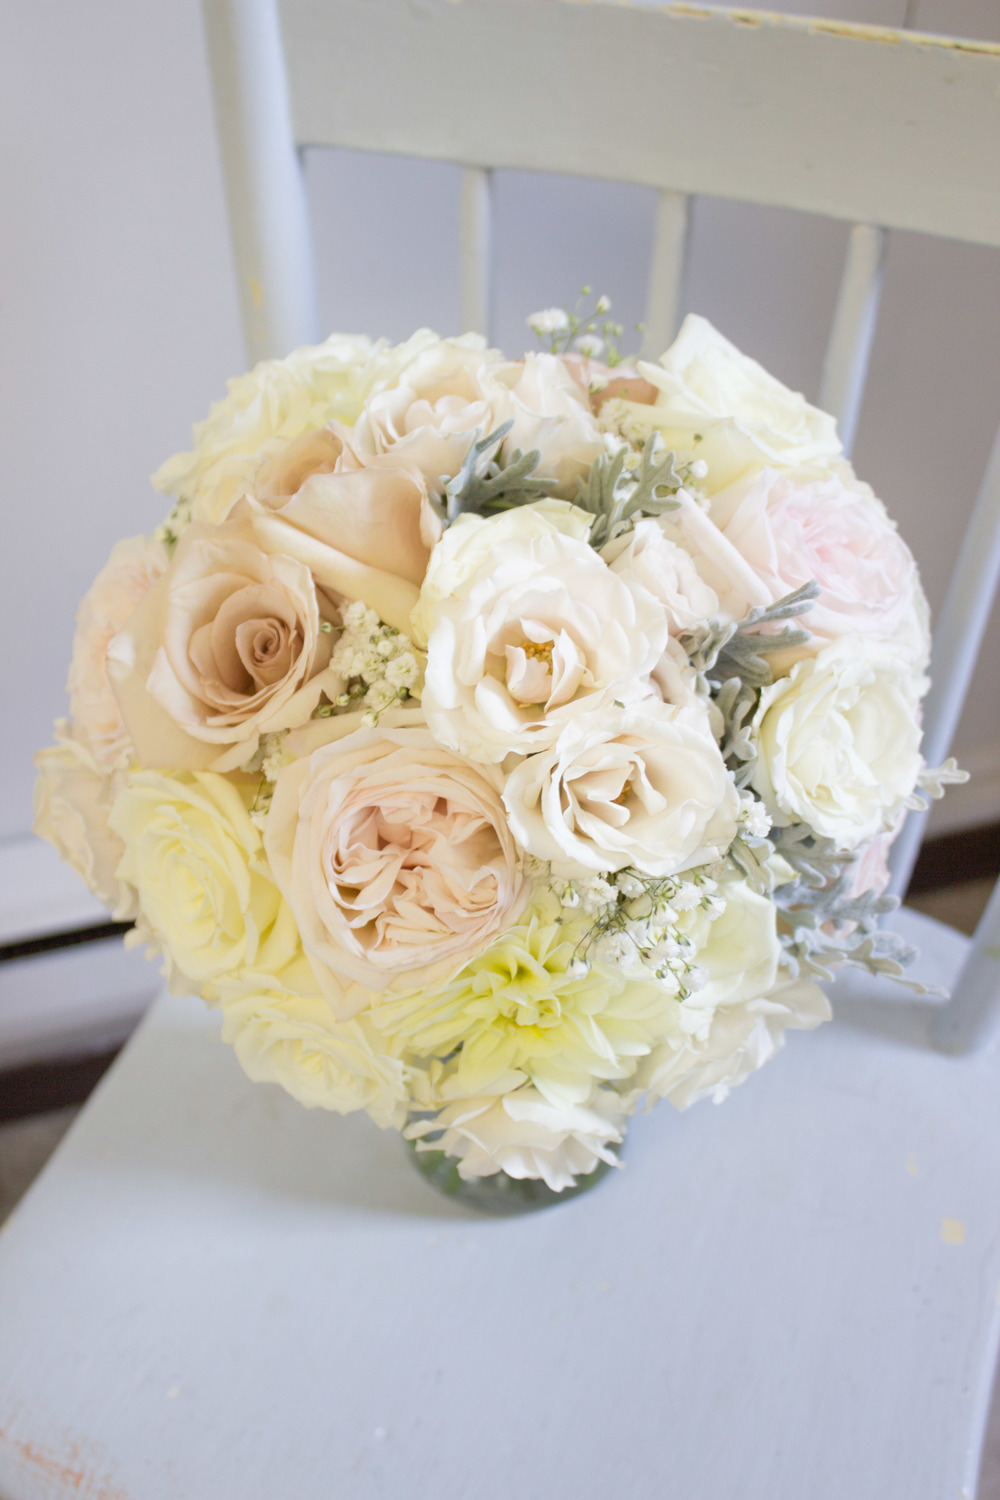 Brides Bouquet: Garden roses, dahlias, baby's breath, roses, freshly picked dusty miller from my garden!